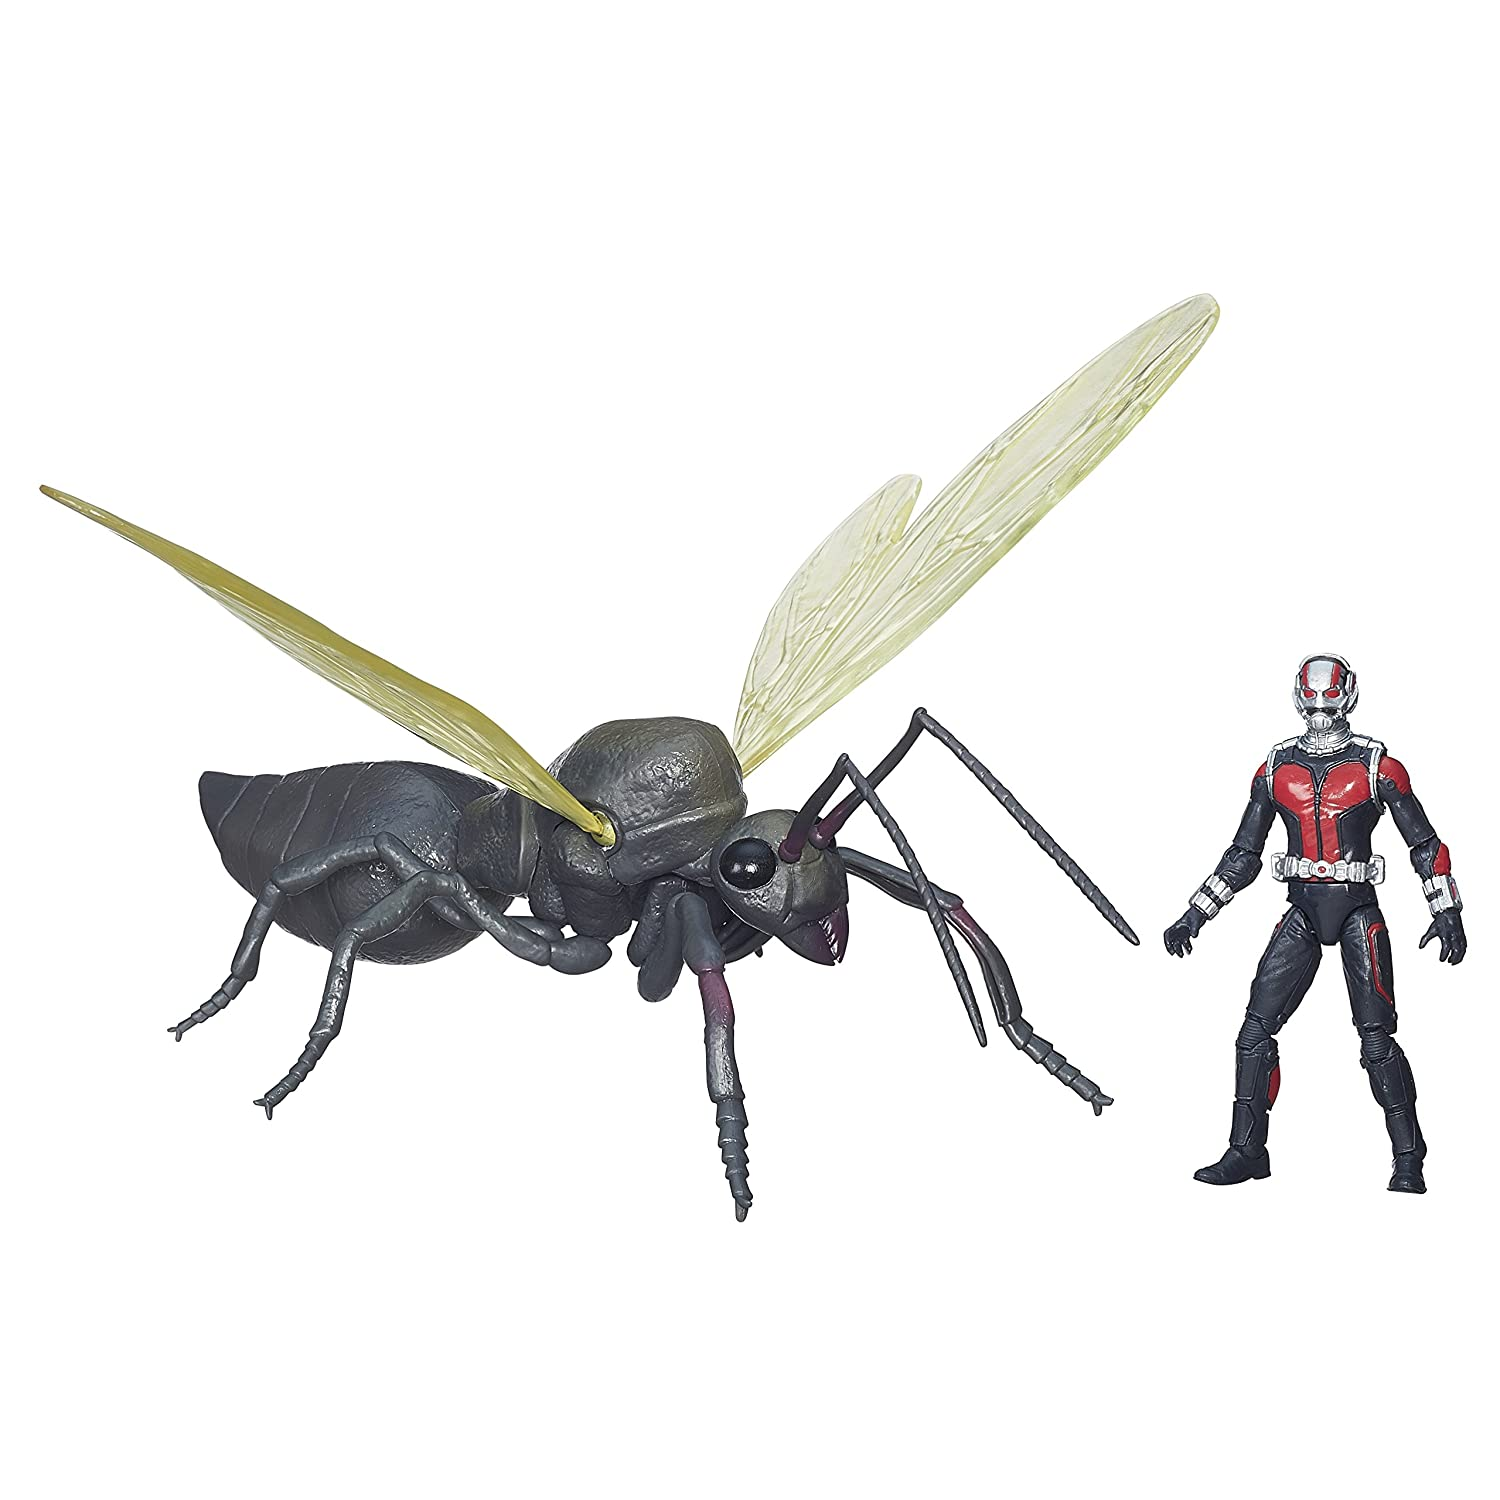 Marvel Avengers – Infinite Series – Ant-Man Figur (ca. 9cm) [UK Import] kaufen